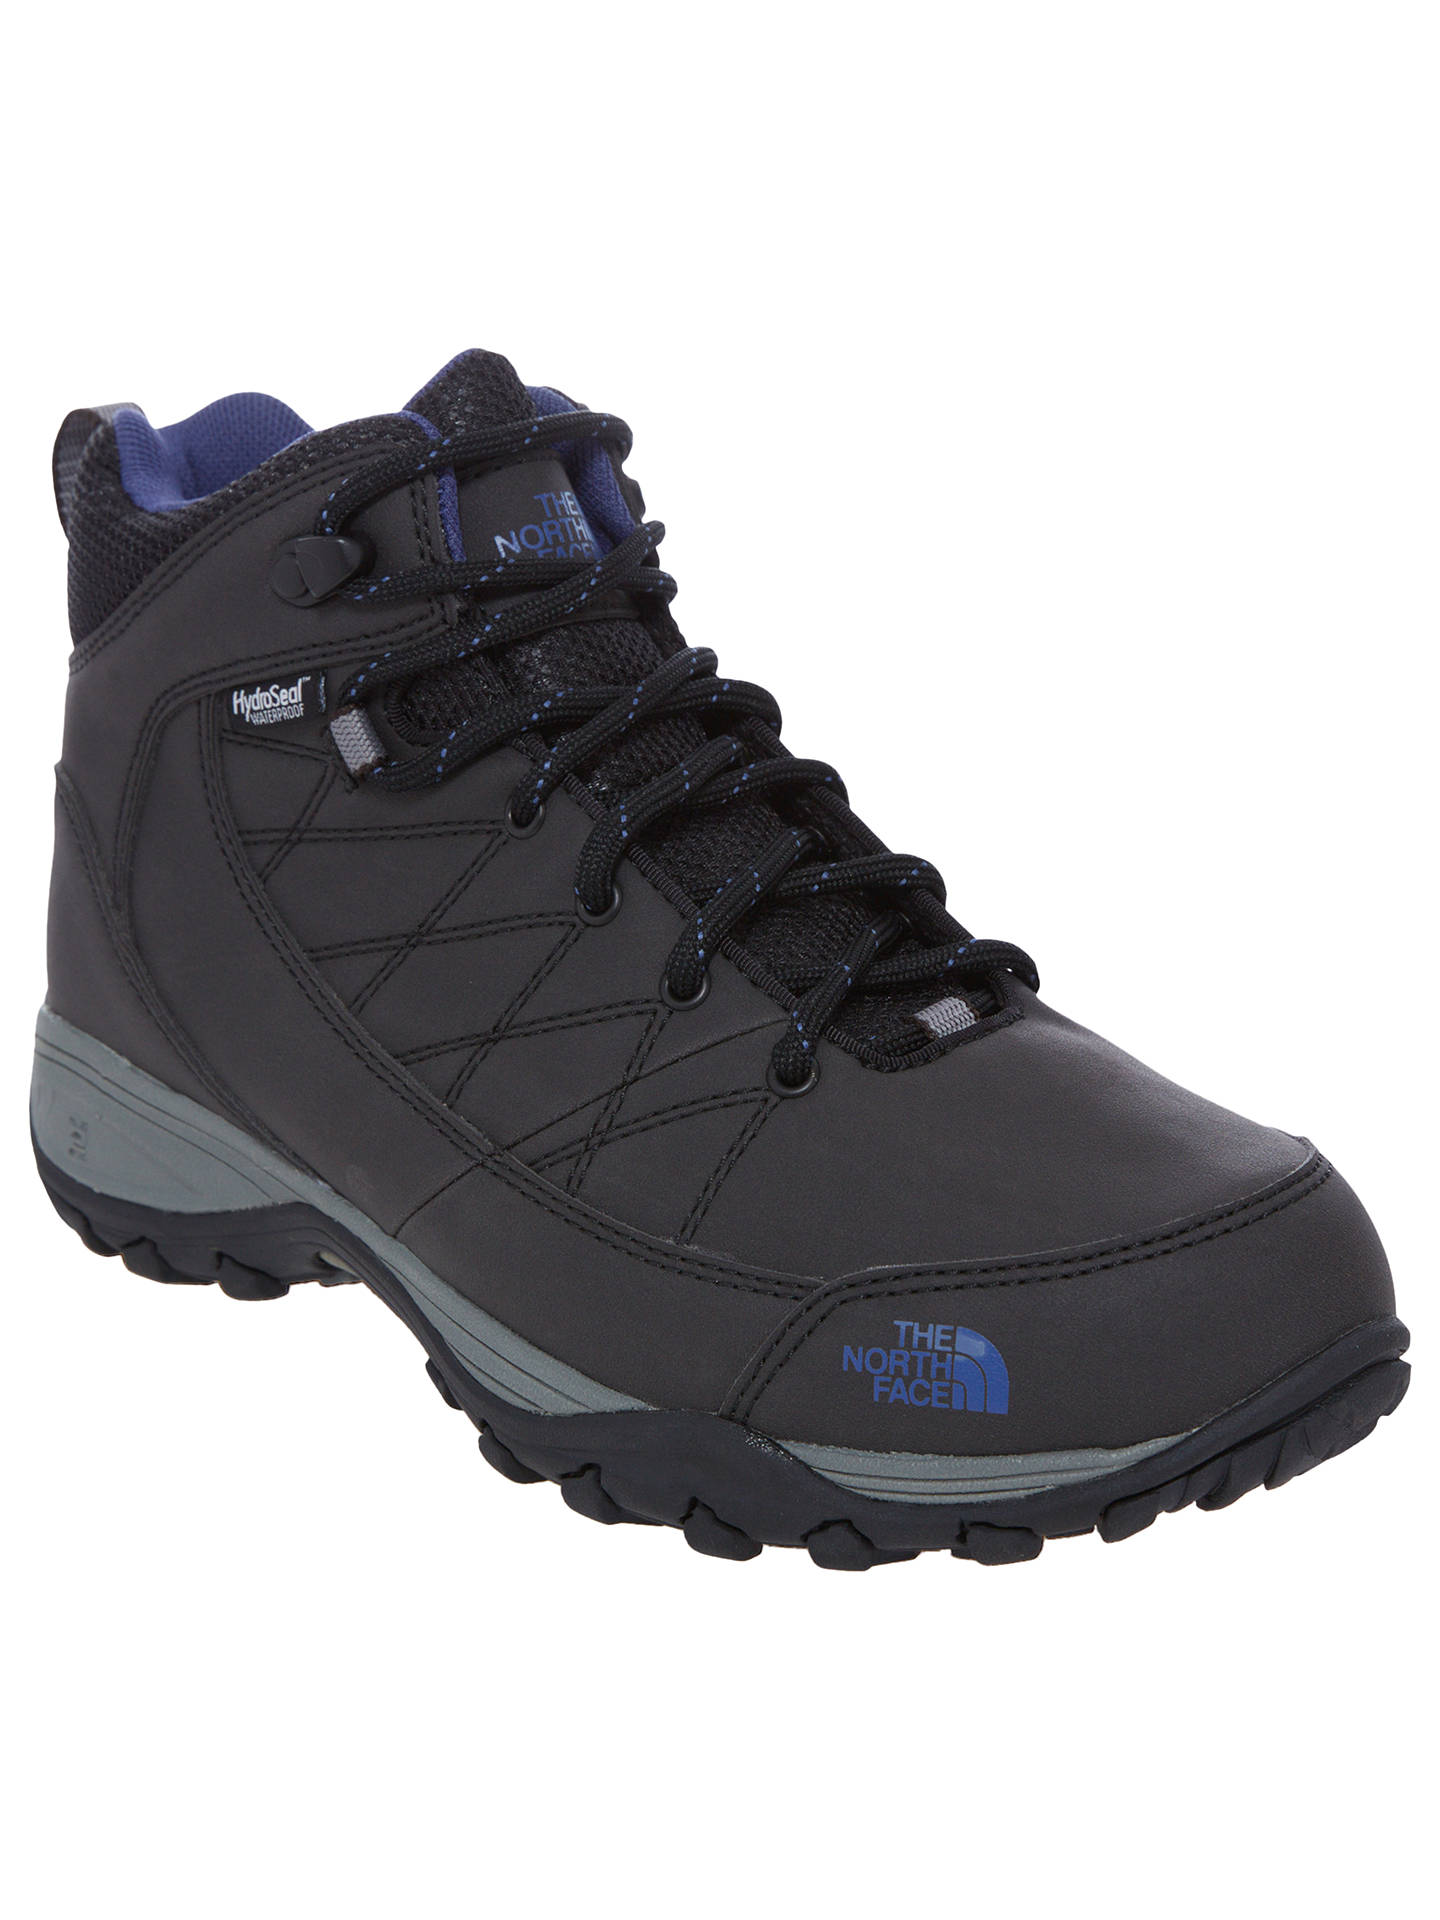 Buy The North Face Storm Strike WP Insulated Waterproof Women's Walking Boots, Black, 4 Online at johnlewis.com